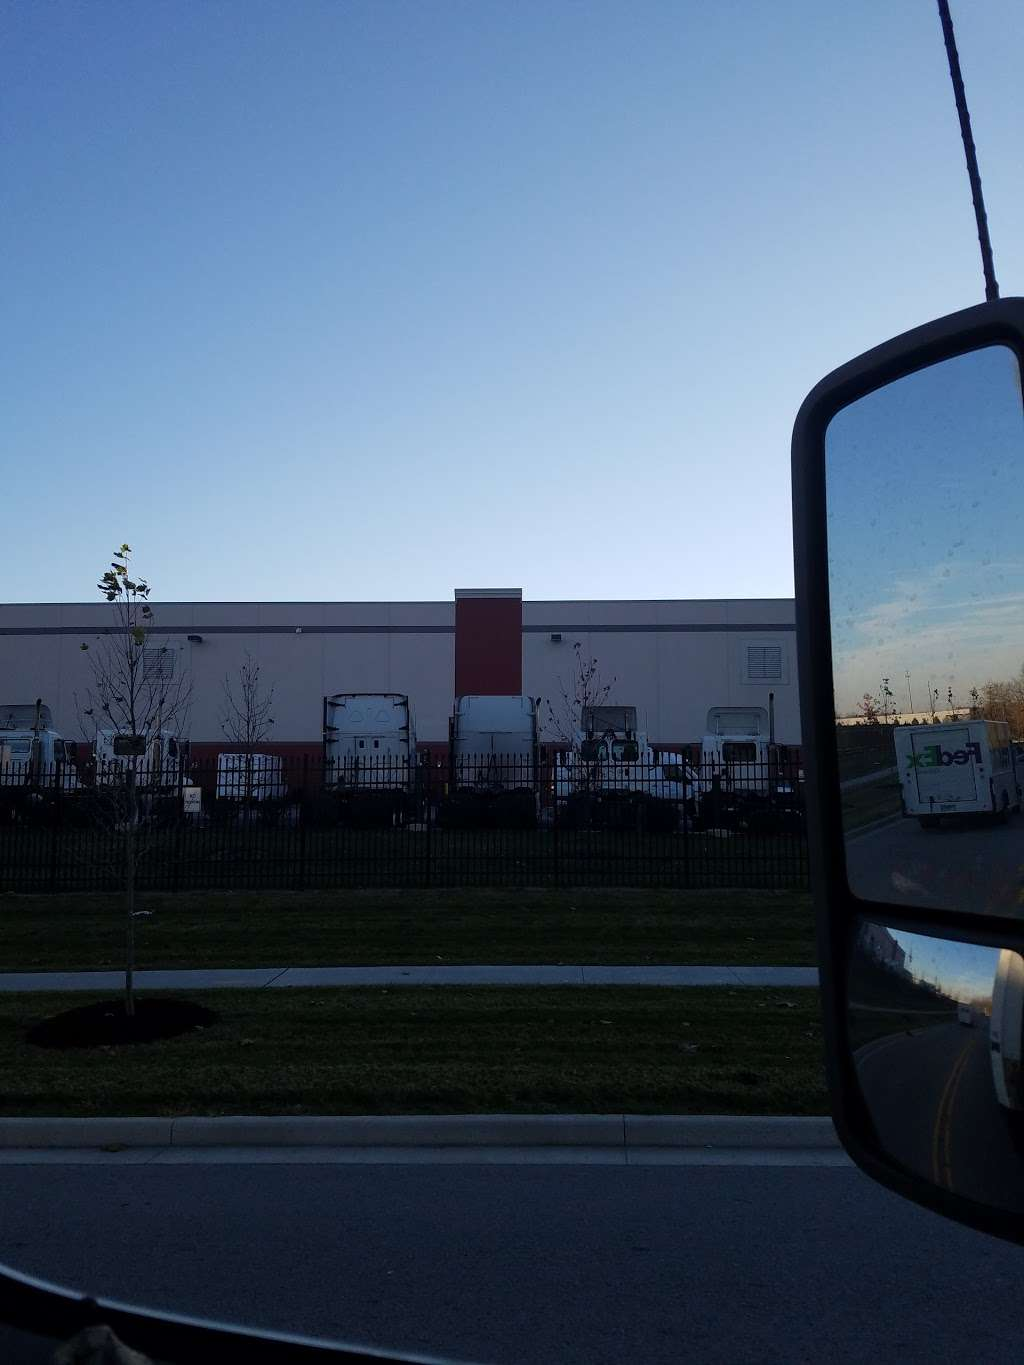 FedEx Ground - moving company  | Photo 7 of 10 | Address: 10301 Bennett Pkwy, Zionsville, IN 46077, USA | Phone: (800) 463-3339